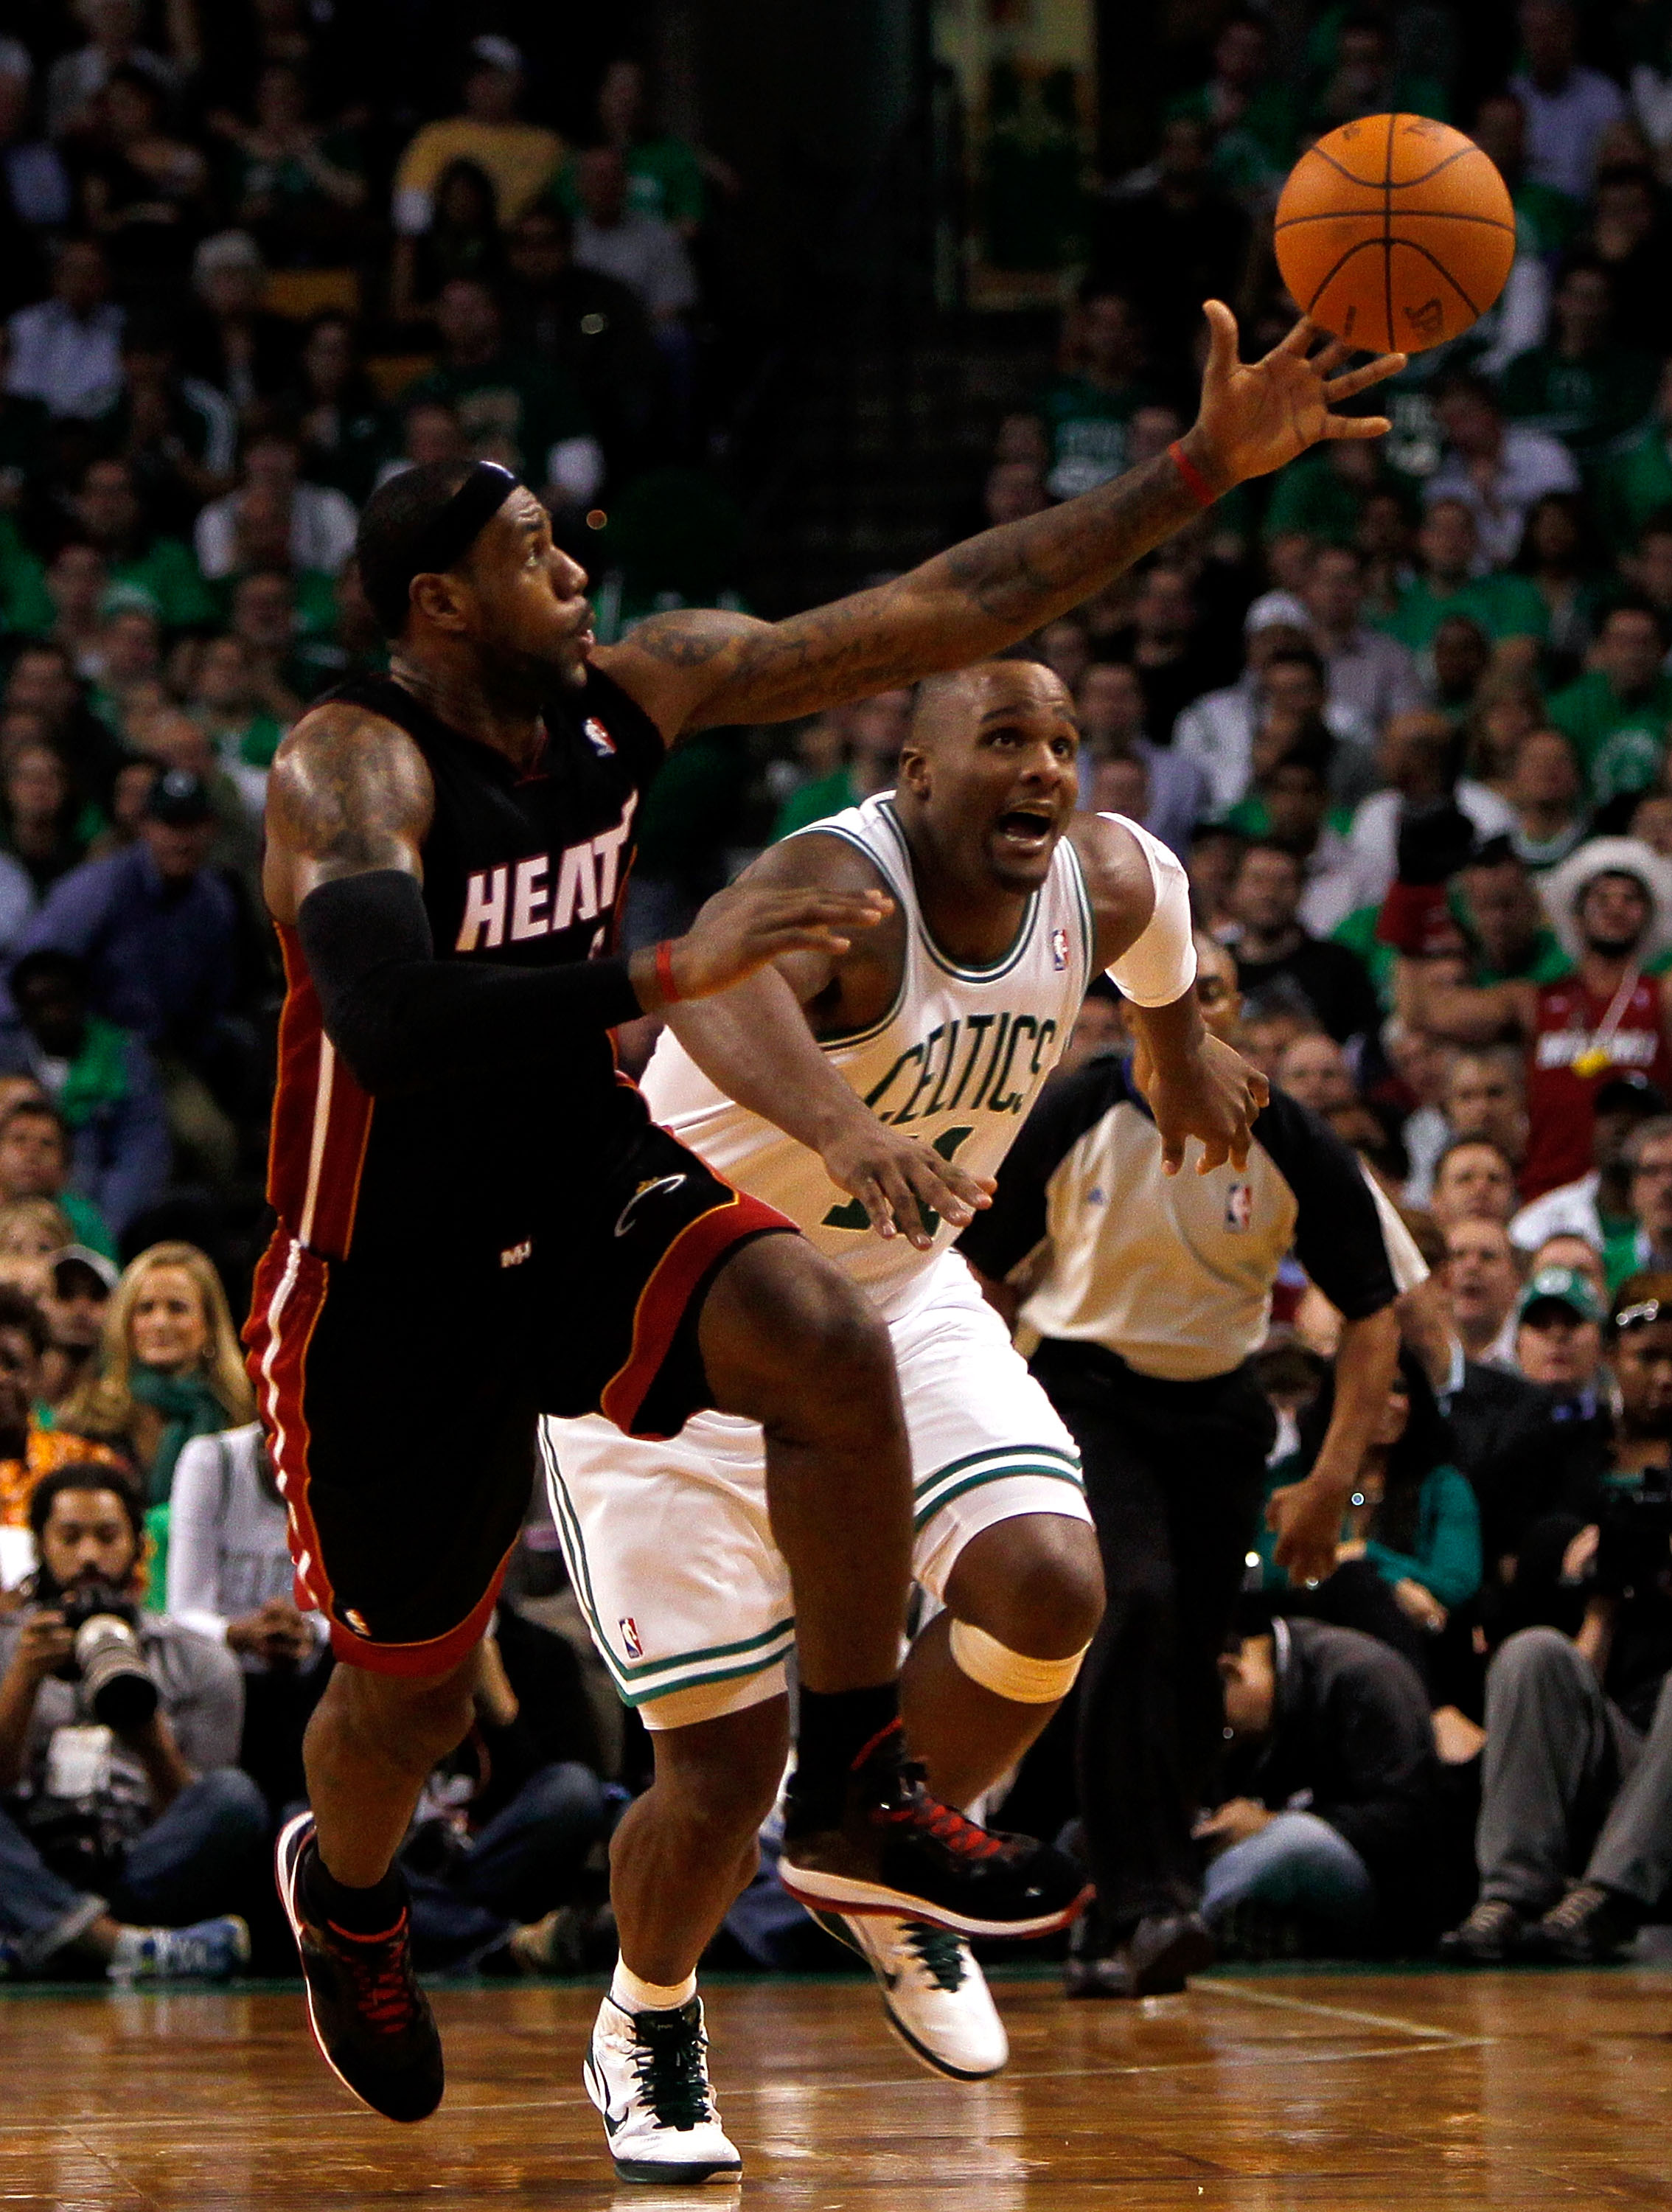 BOSTON, MA - OCTOBER 26:  LeBron James #6 of the Miami Heat beats Glen Davis #11 of the Boston Celtics to a loose ball at the TD Banknorth Garden on October 26, 2010 in Boston, Massachusetts. NOTE TO USER: User expressly acknowledges and agrees that, by d